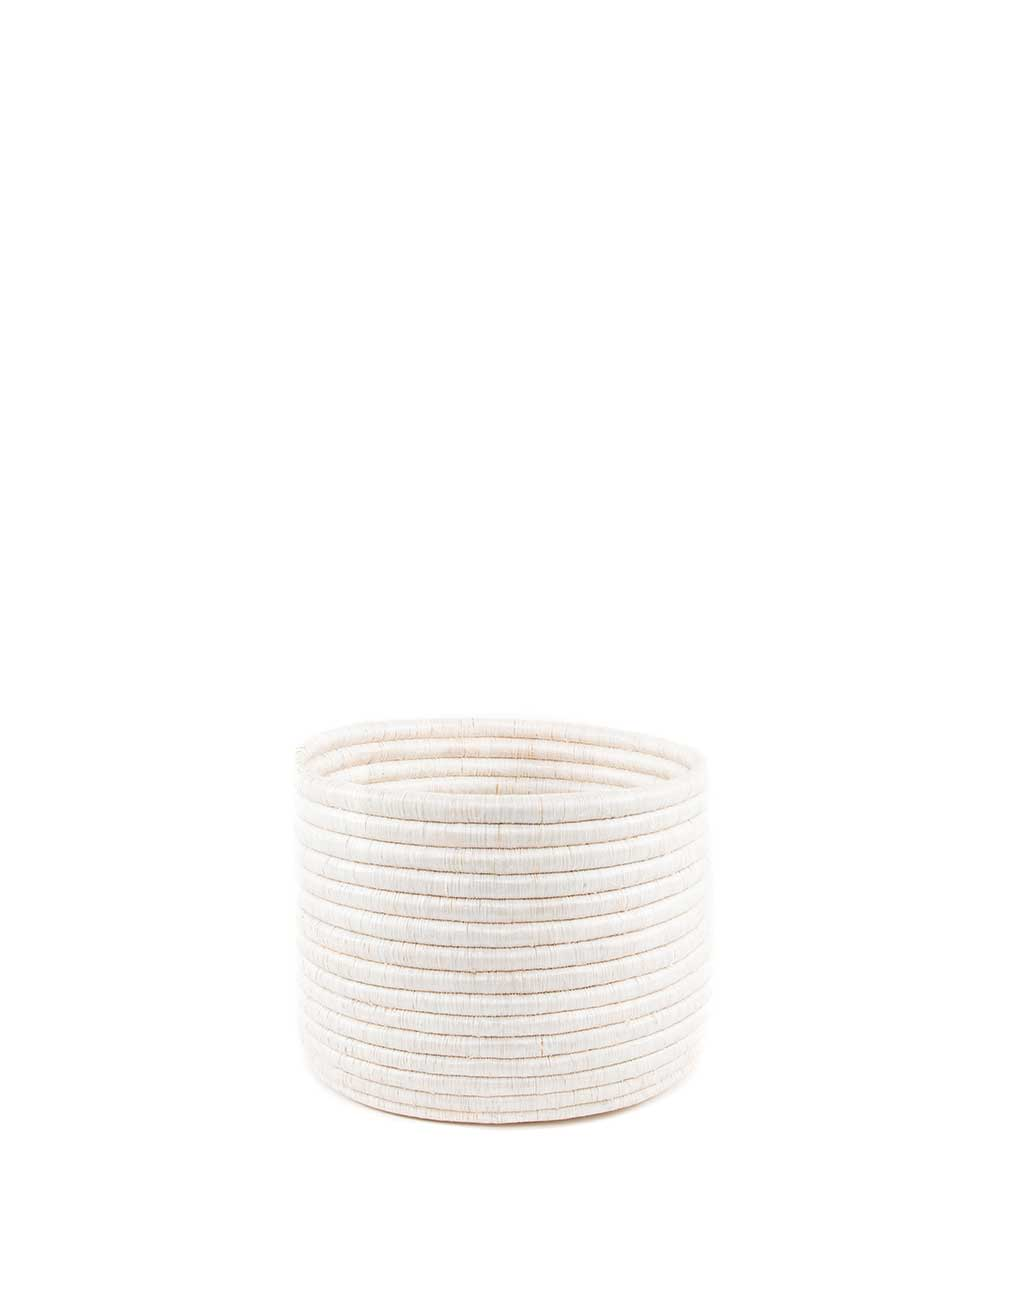 Small White Round Knitting Basket | The Little Market